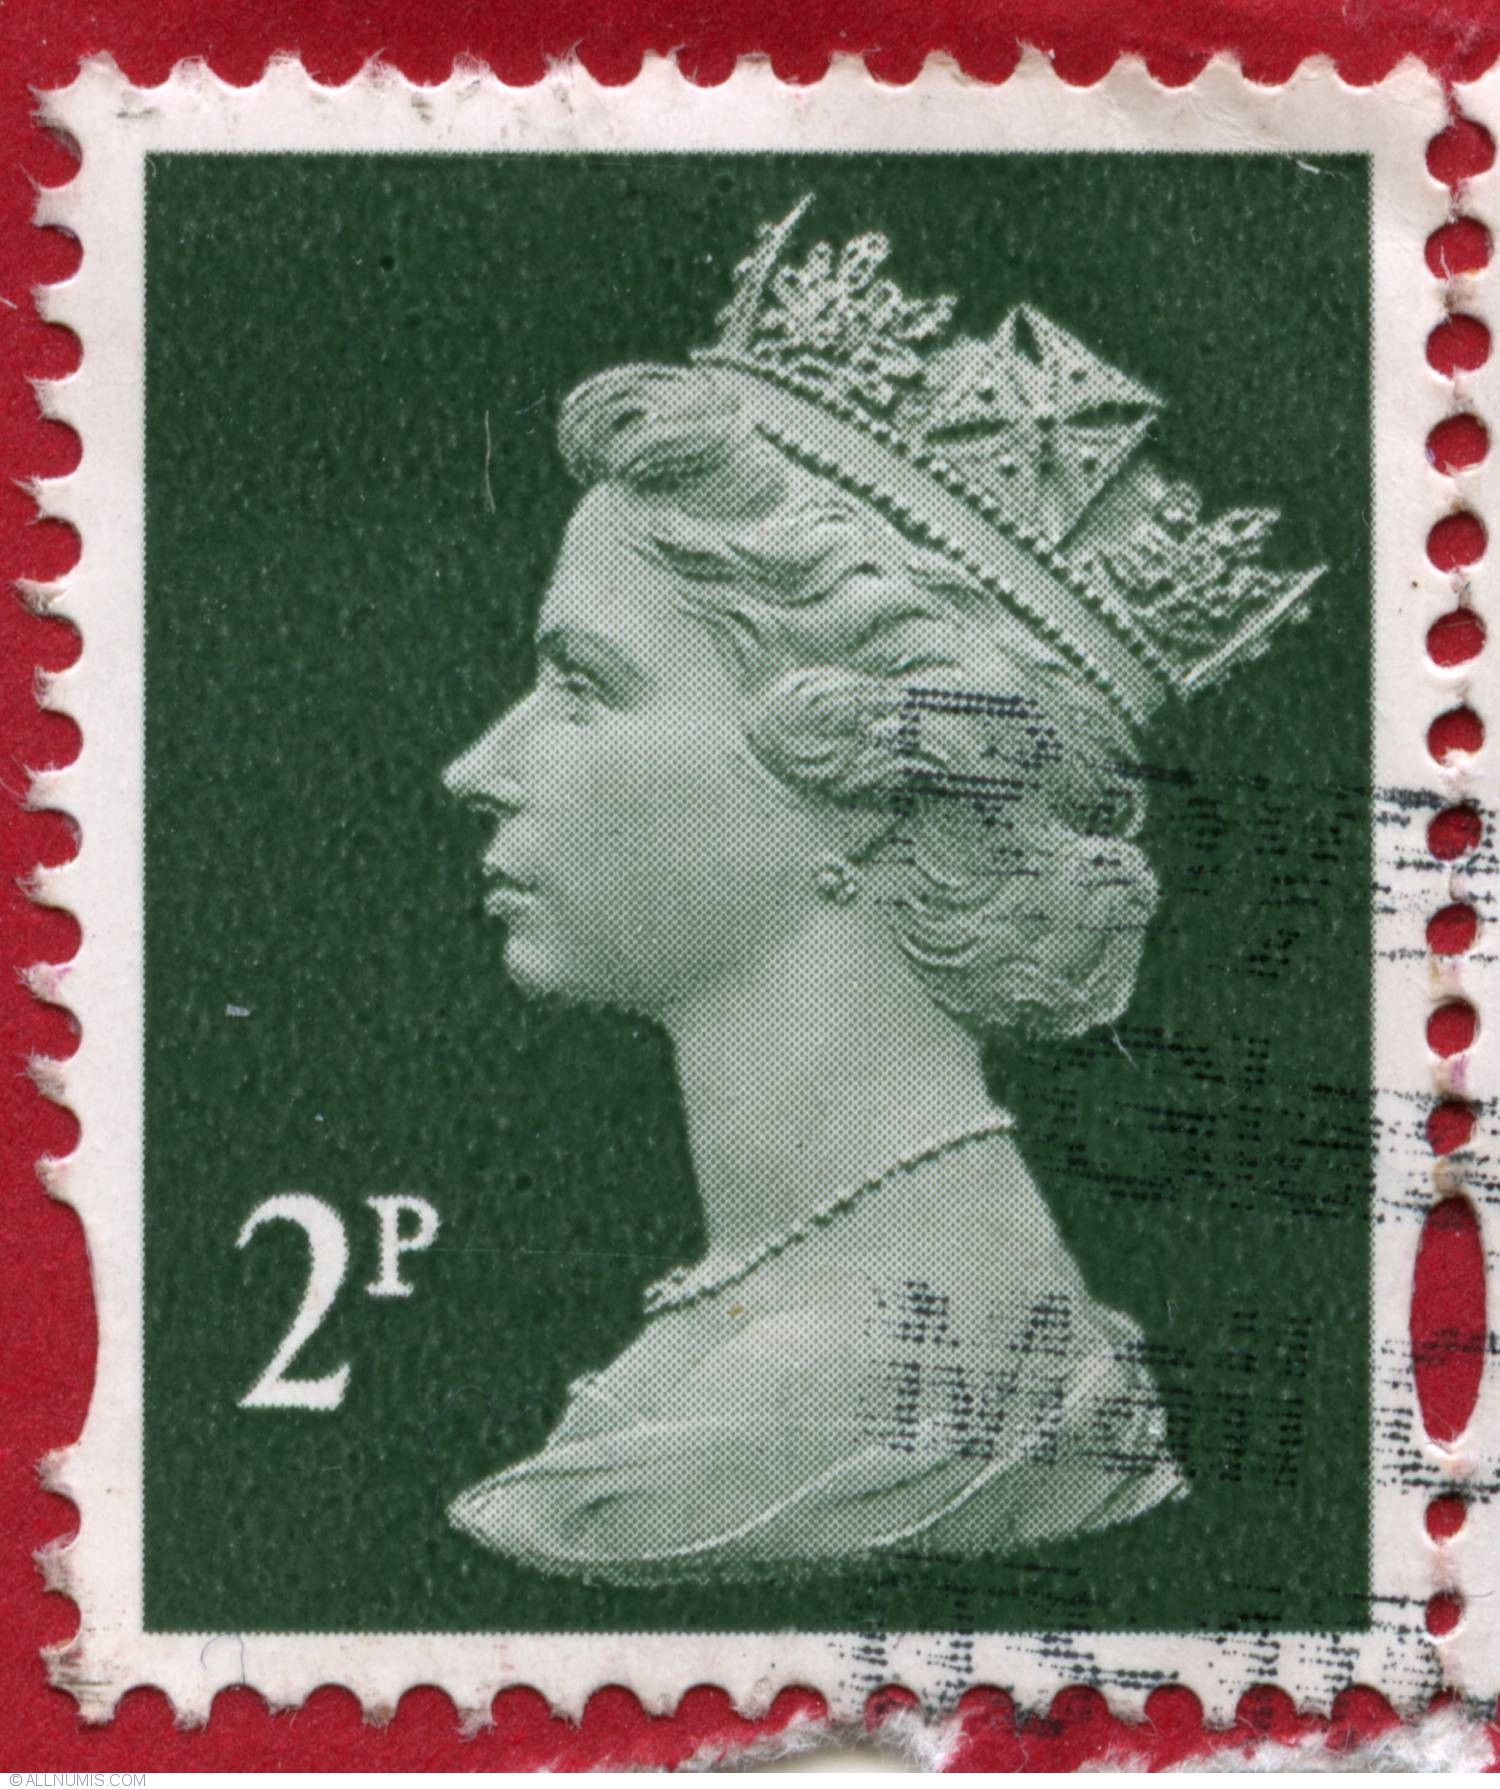 Top 13 most valuable postage stamps in the world - China